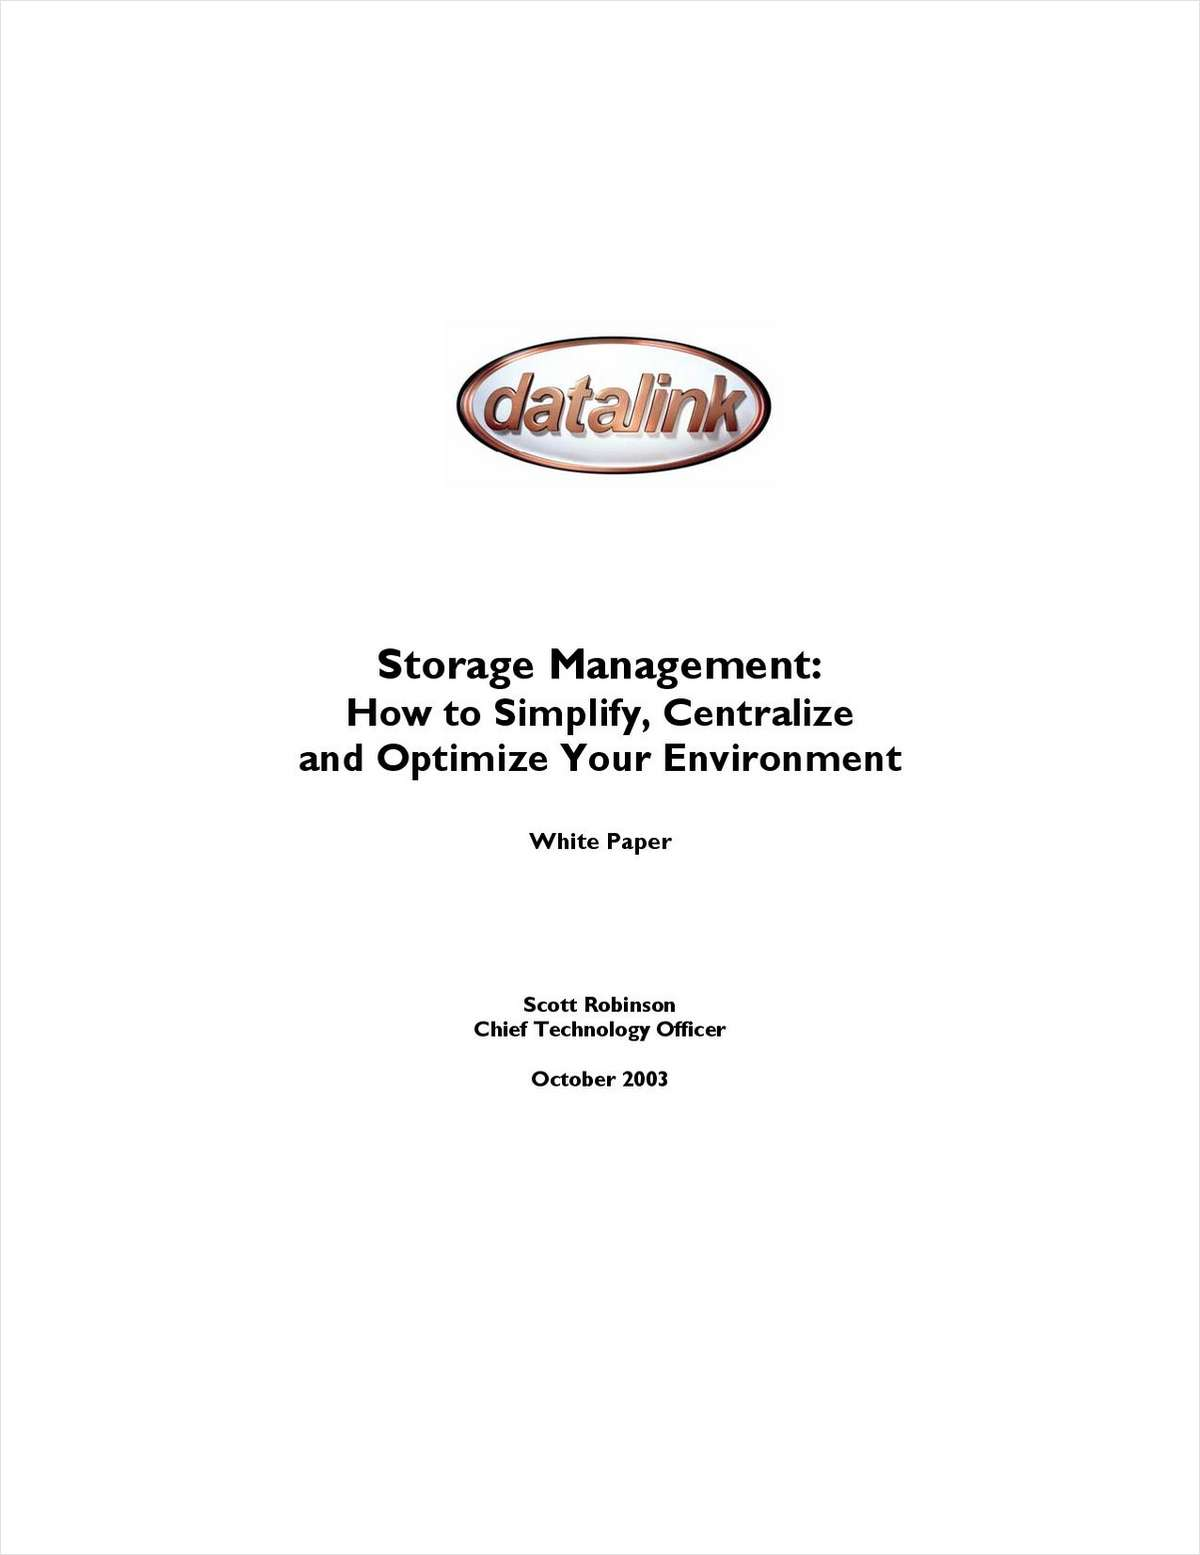 Storage Management: How to Simplify, Centralize and Optimize Your Environment